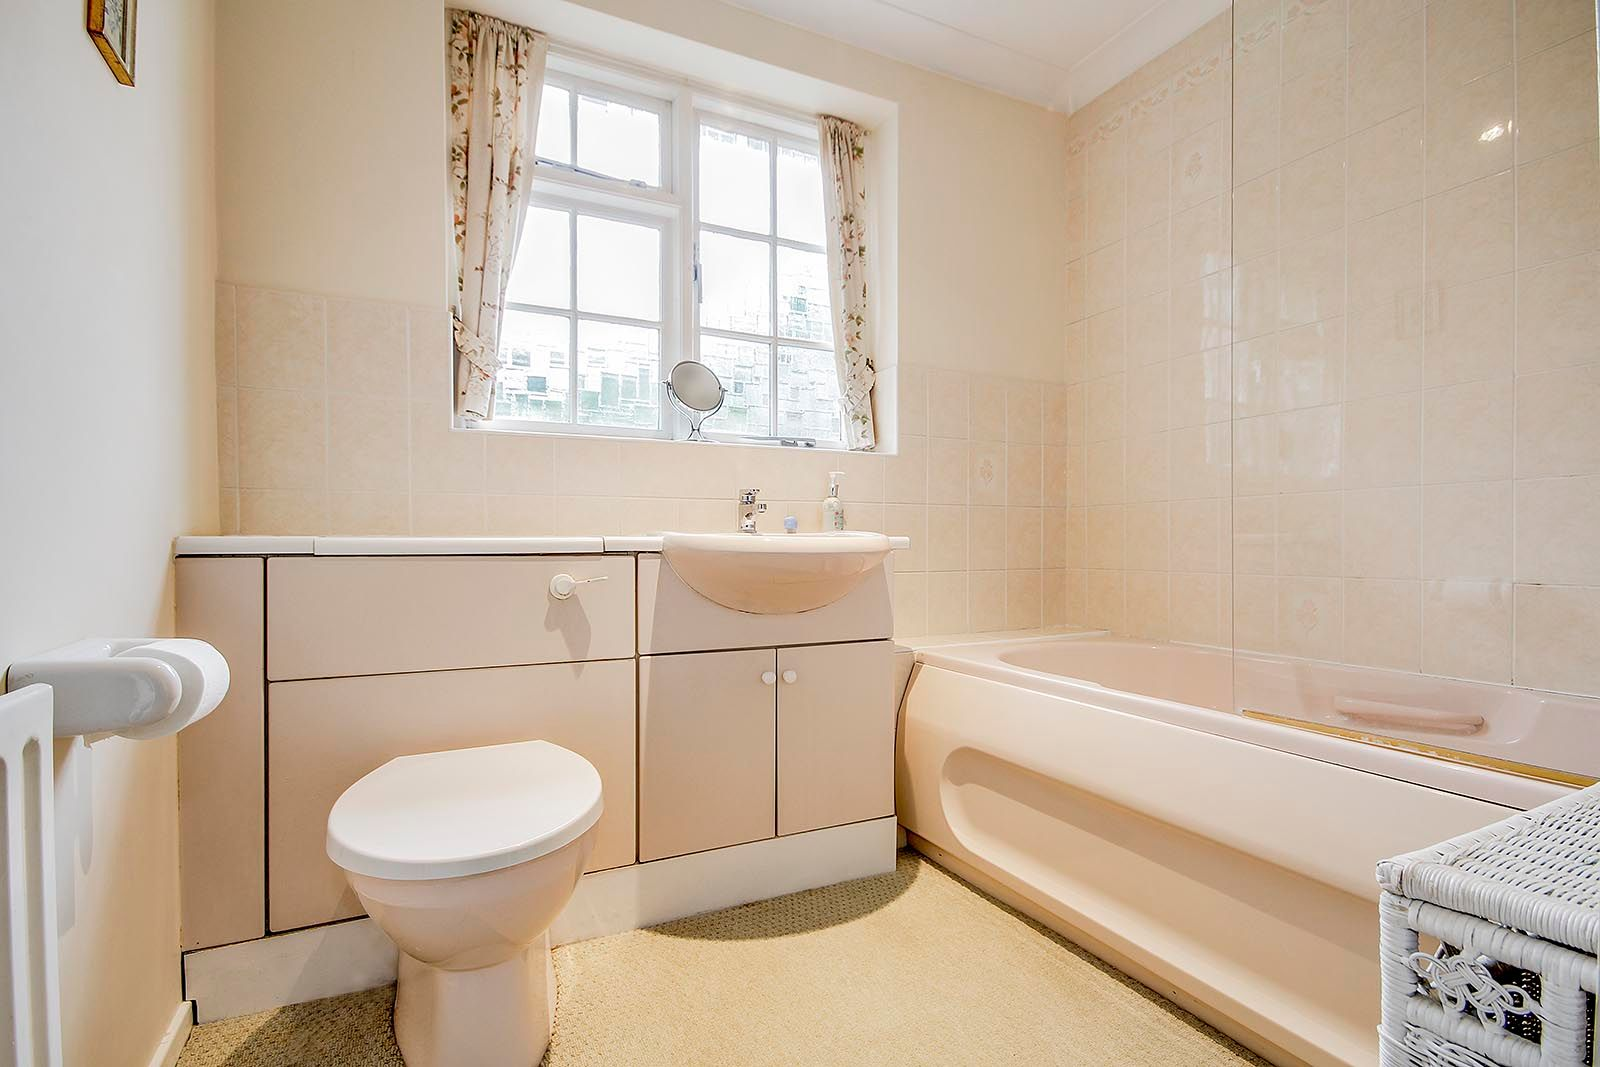 3 bed Bungalow for sale in Angmering - Main Bathroom (Property Image 6)